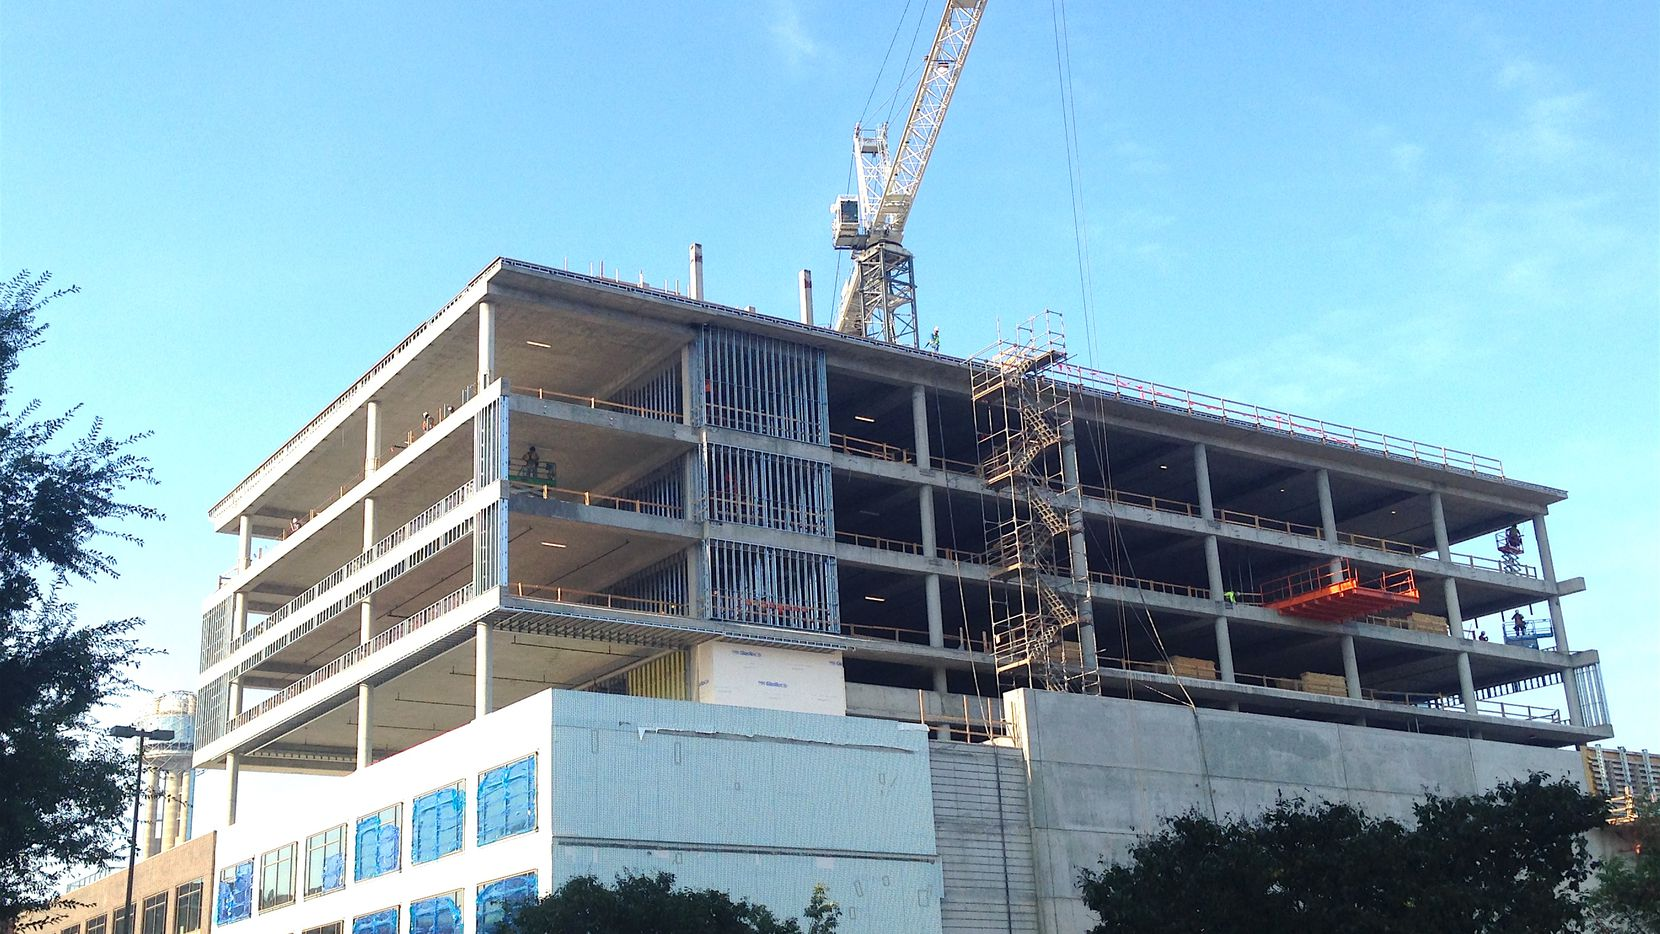 Crescent Real Estate's new Luminary building in the West End has topped out construction.